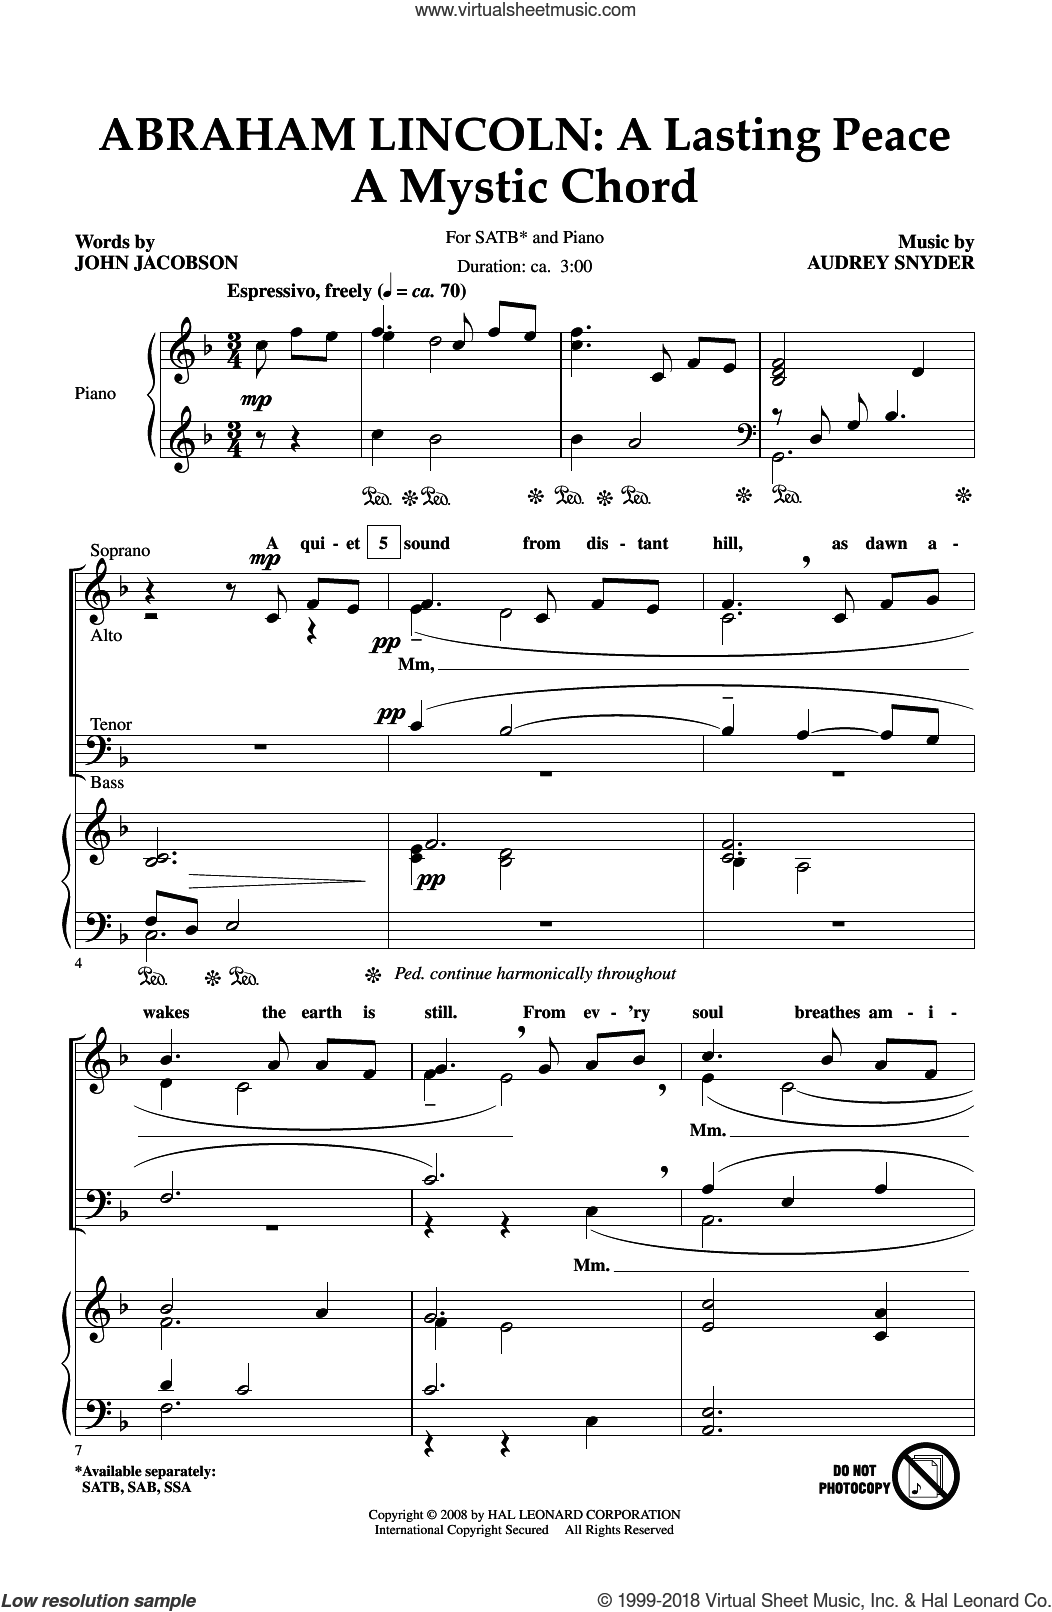 Abraham Lincoln: A Lasting Peace sheet music for choir (SATB: soprano, alto, tenor, bass) by Audrey Snyder and John Jacobson, intermediate skill level